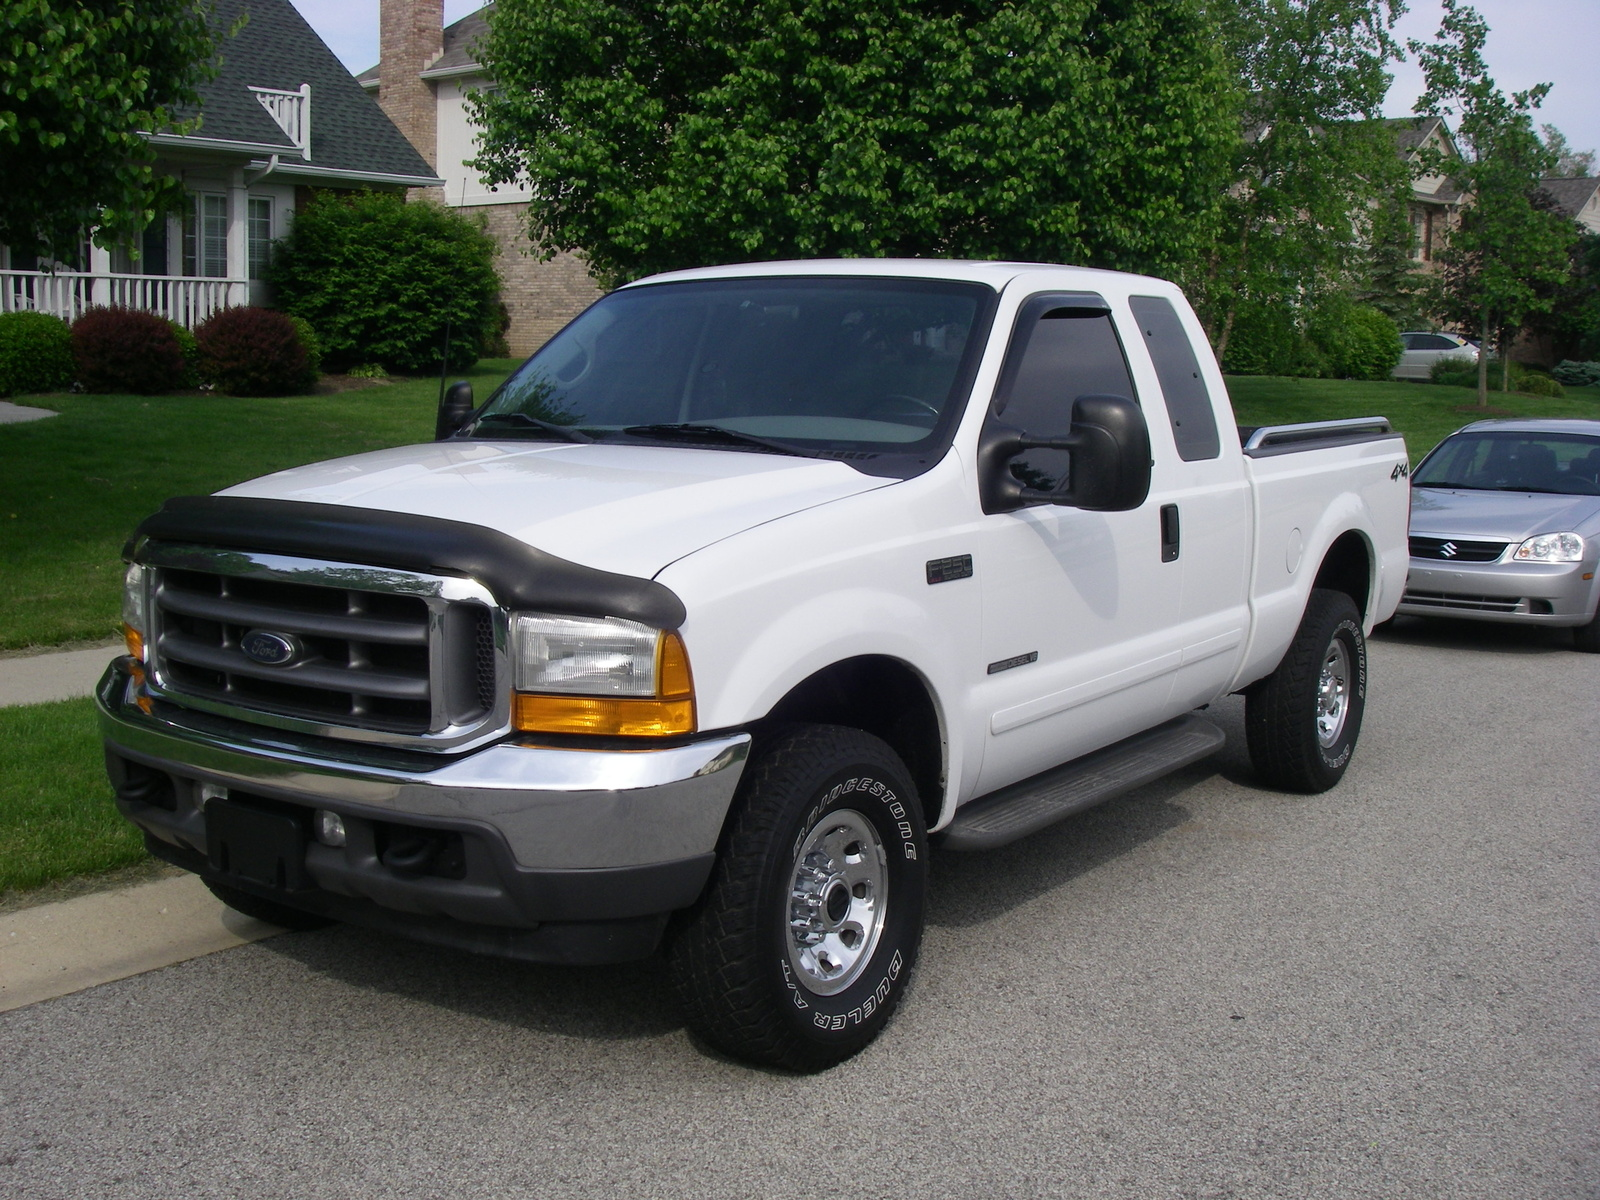 Ford F-150 2001 photo - 3